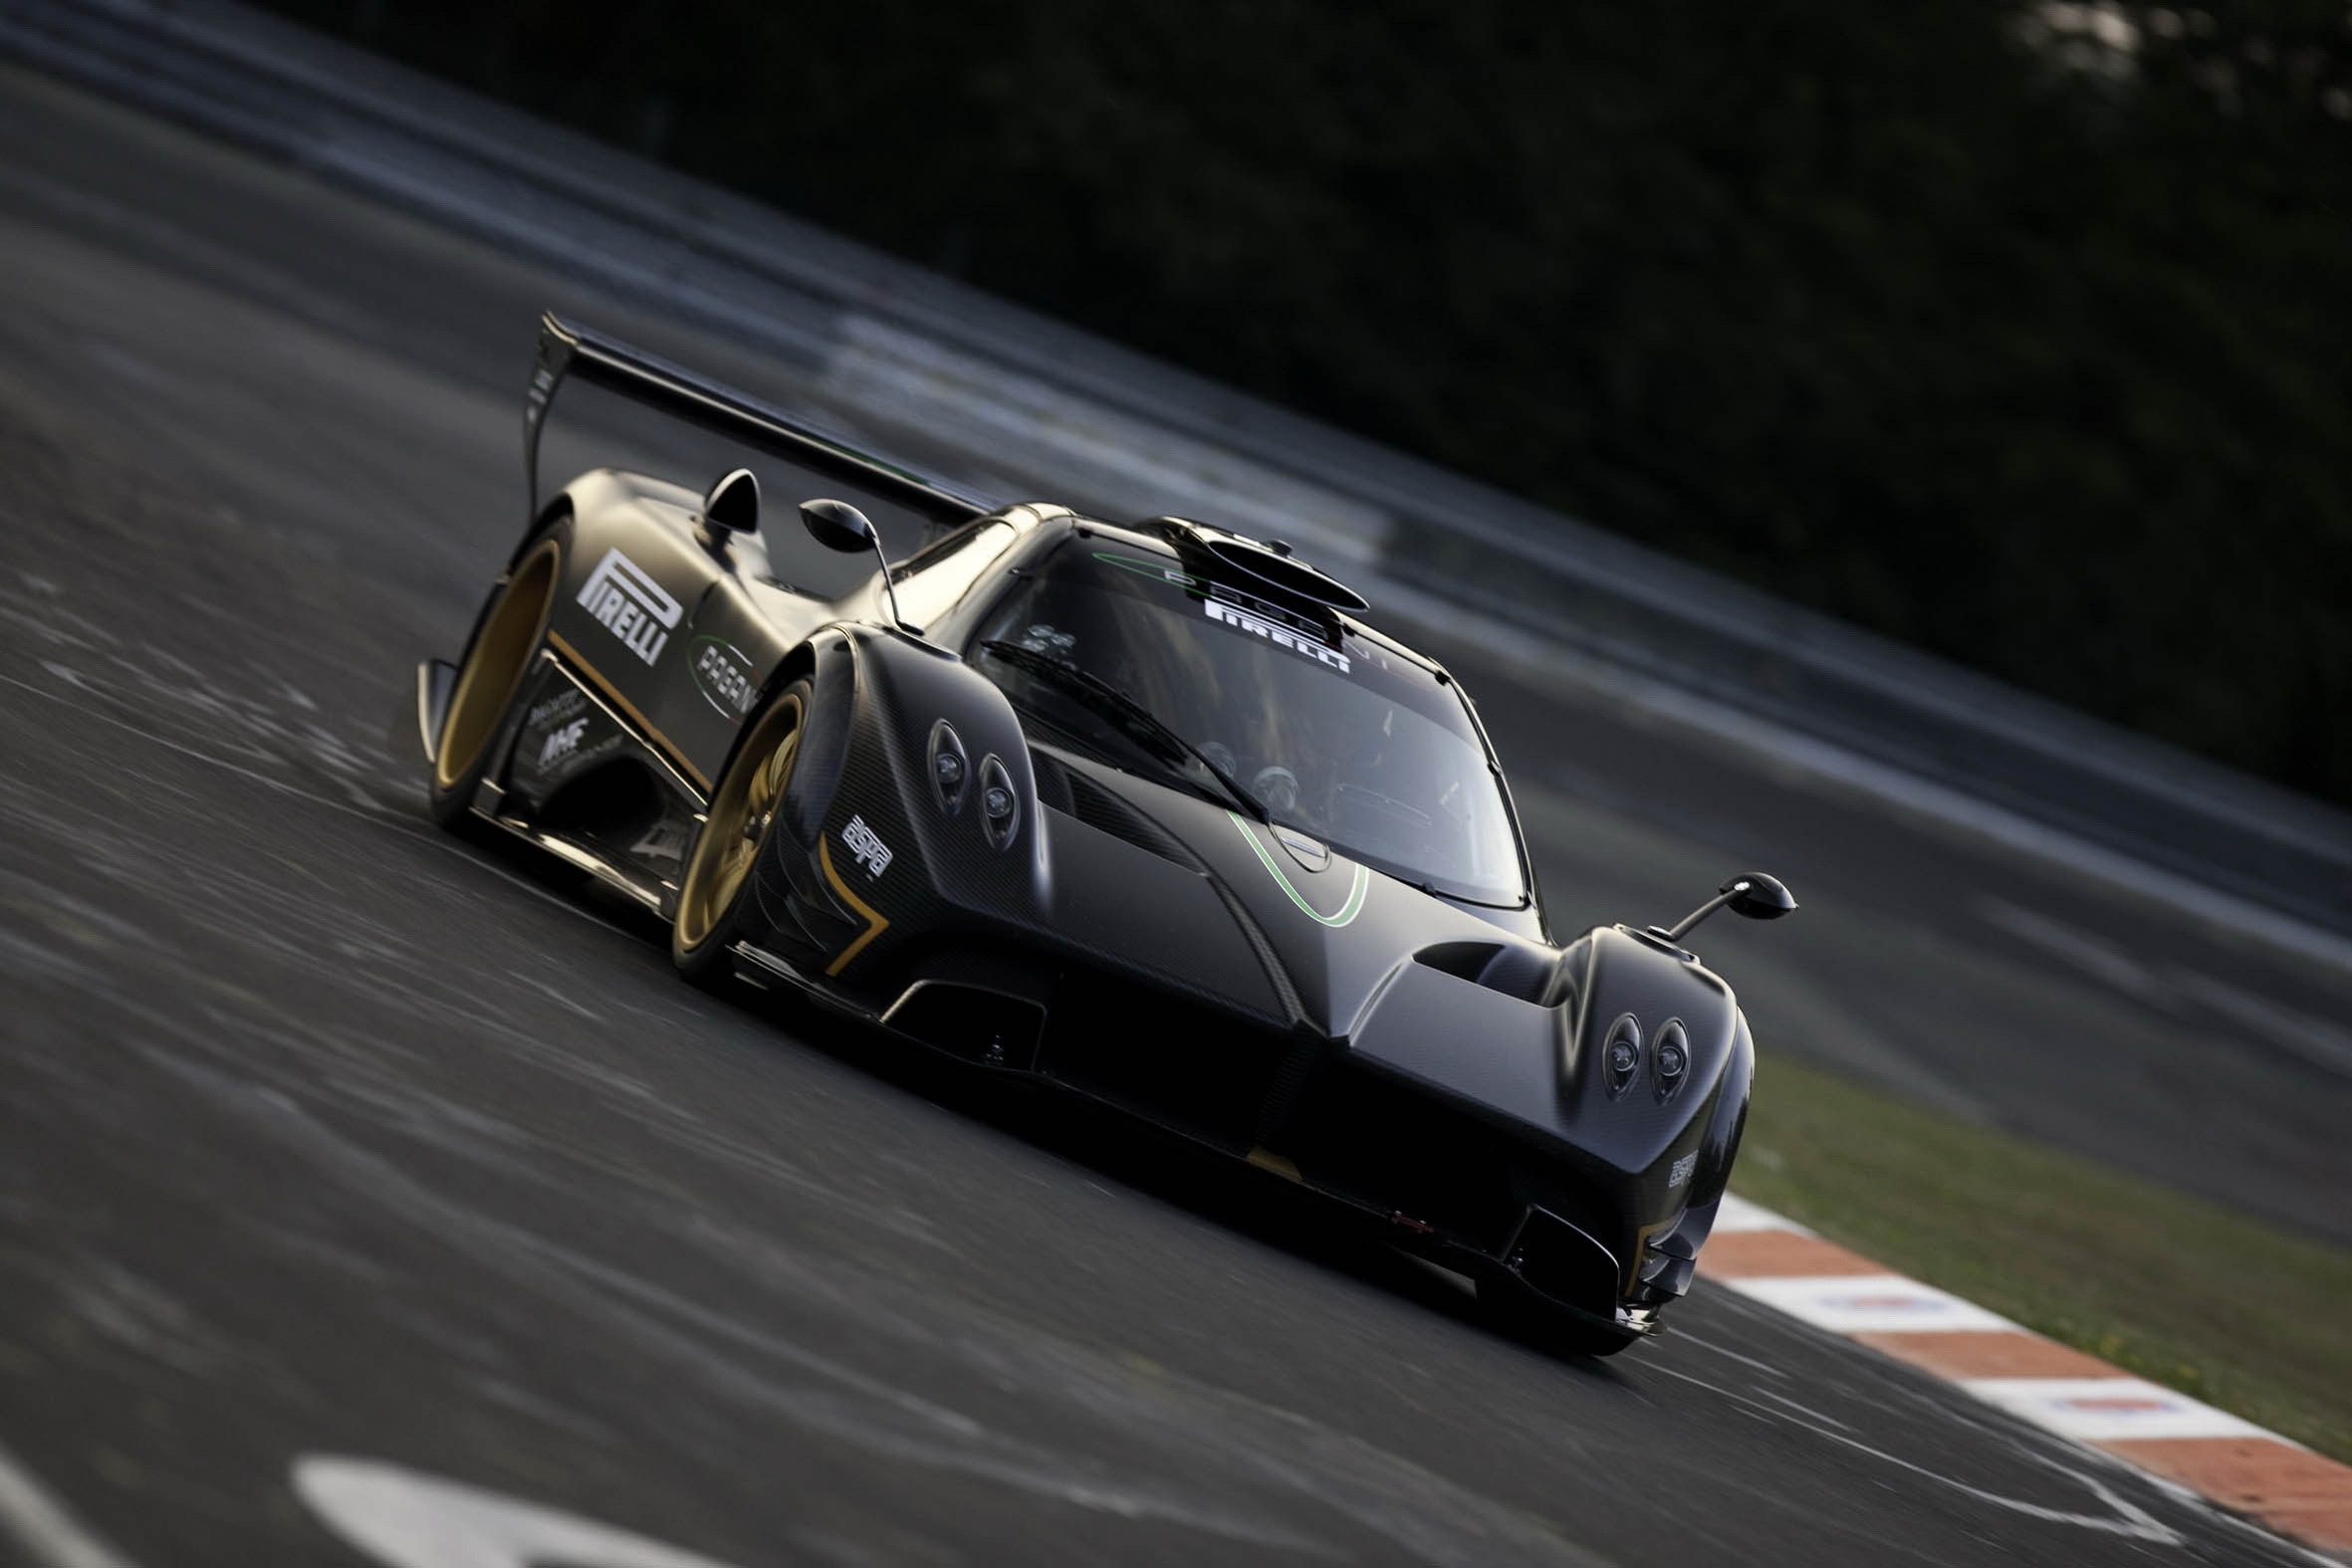 2362x1575 Images Of Pagani Zonda R Wallpaper Wallpaper